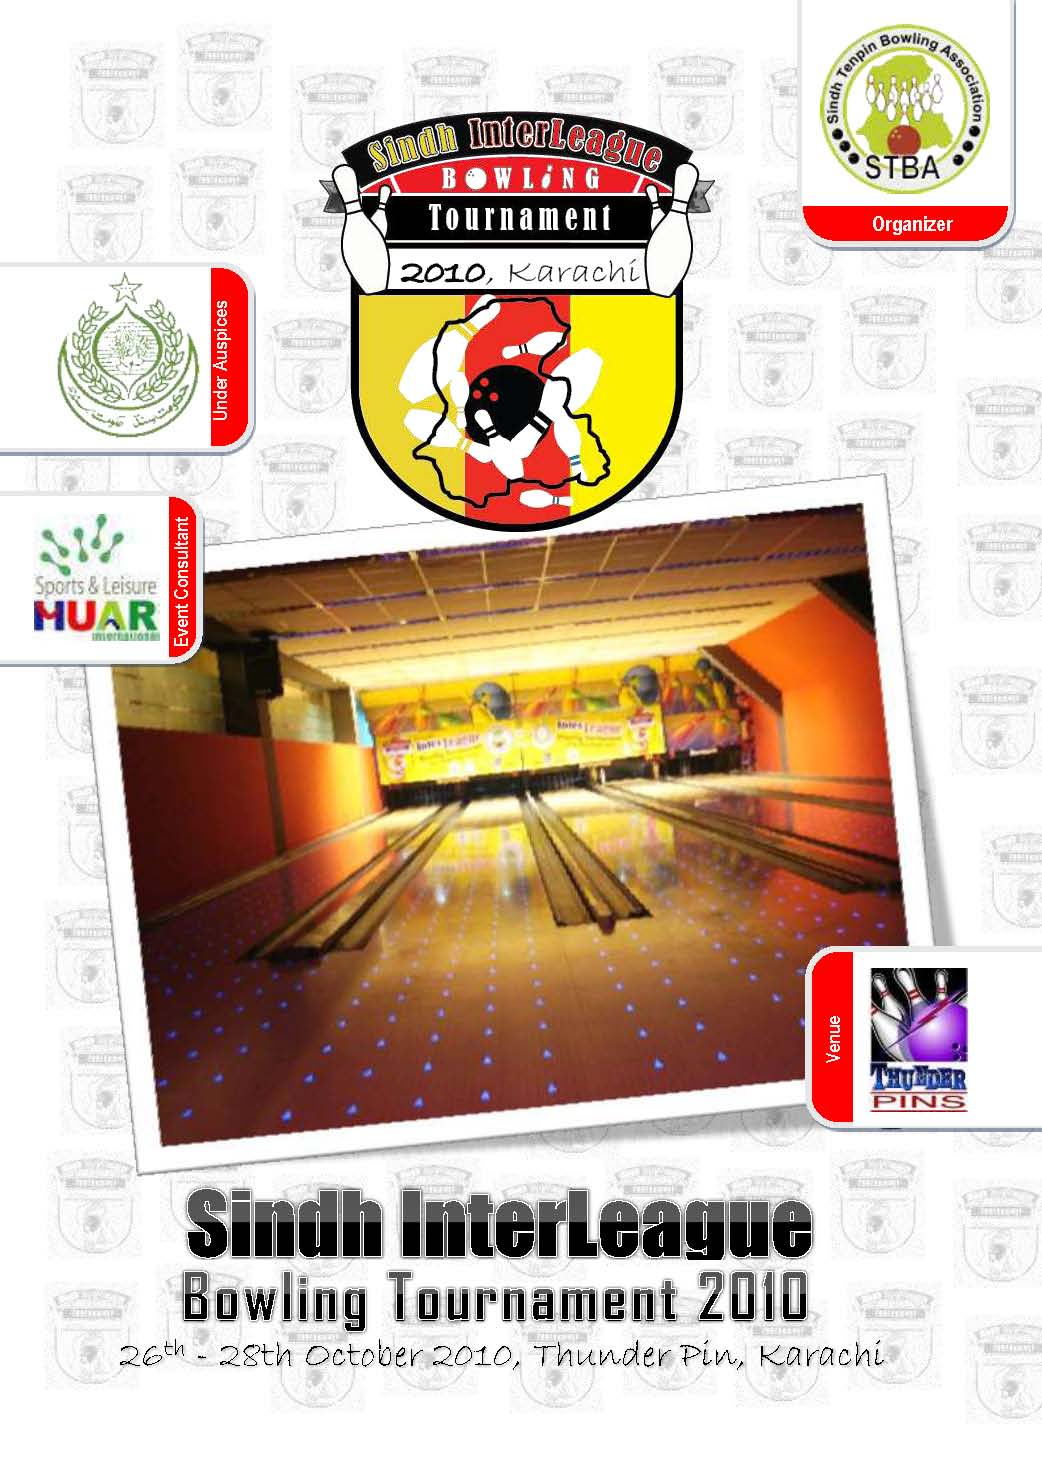 Event Report of SIndh Interleague Bowling Tournament 2010